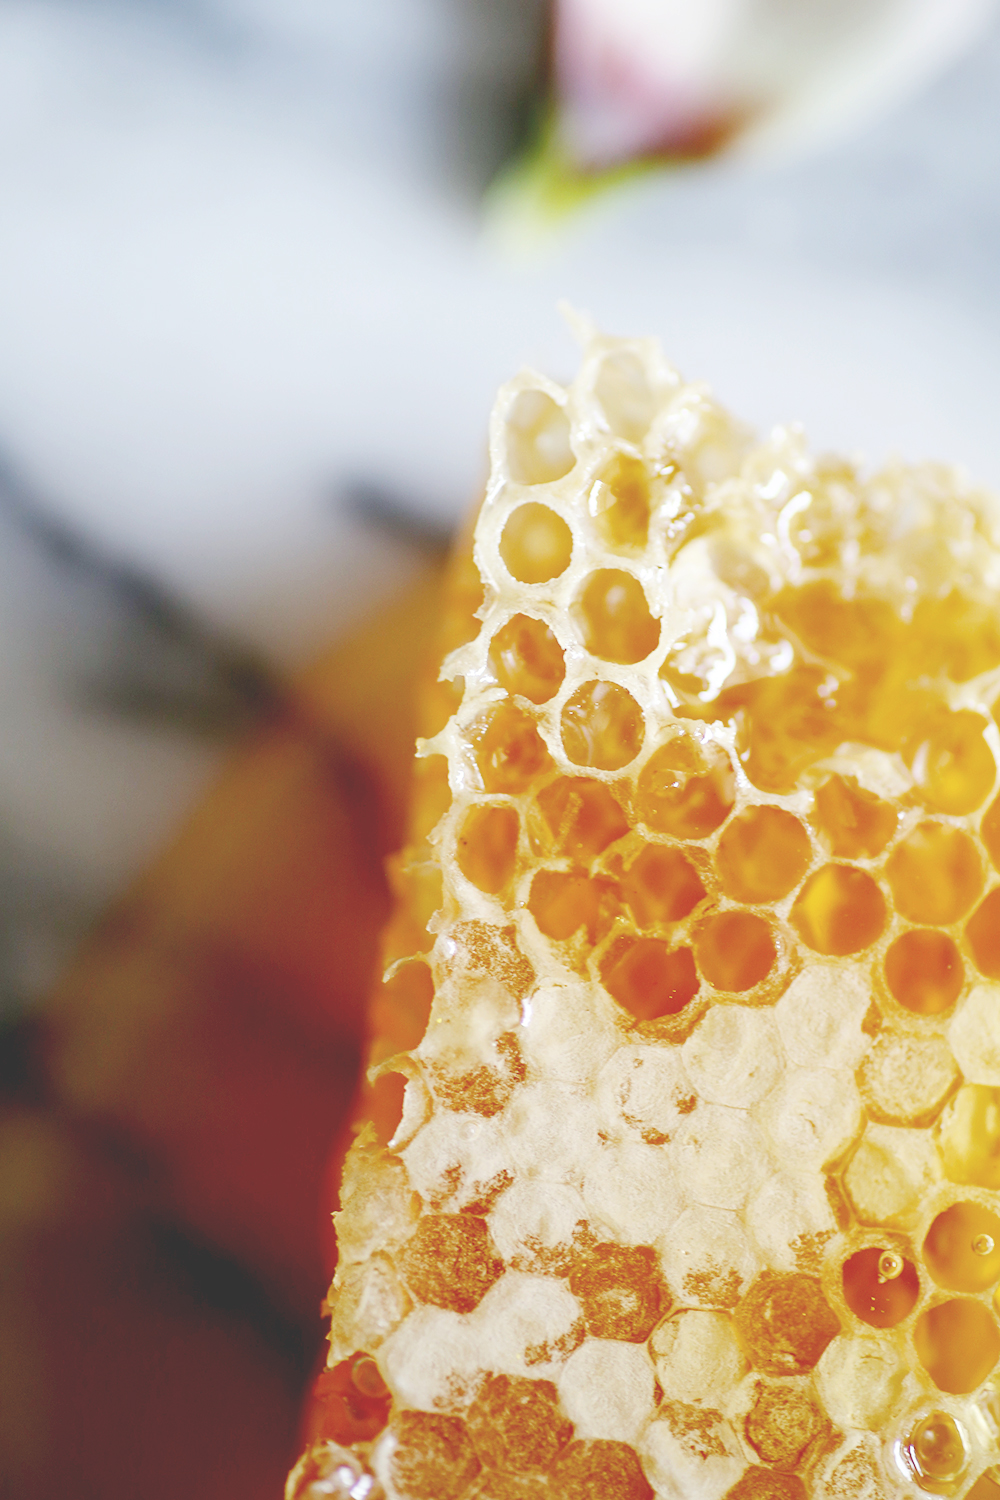 Why Use Honey on Your Face